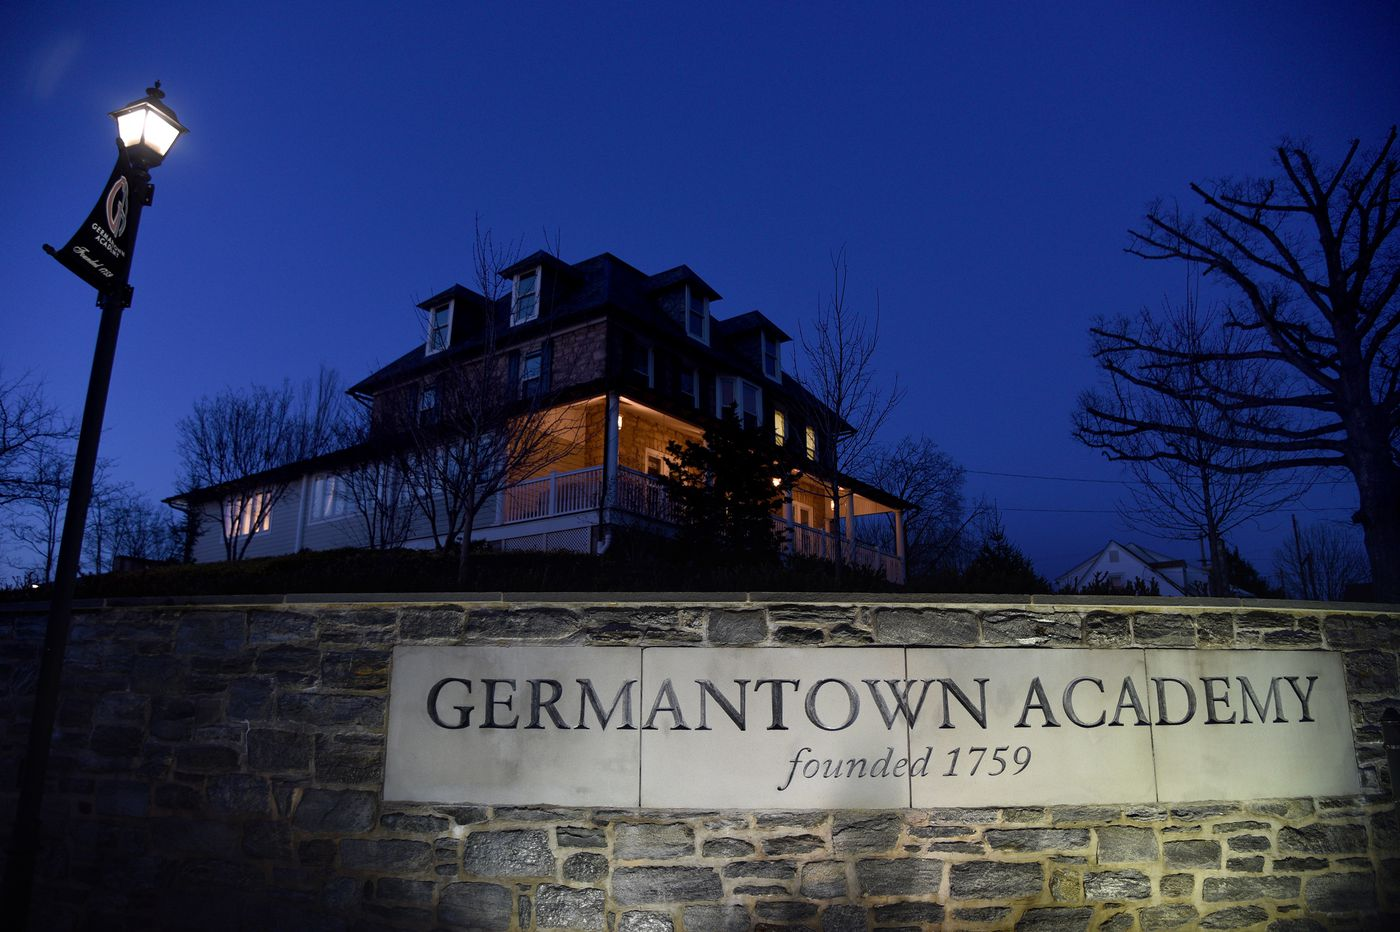 A Germantown Academy teacher had a sexual relationship with a 17-year-old student, police say